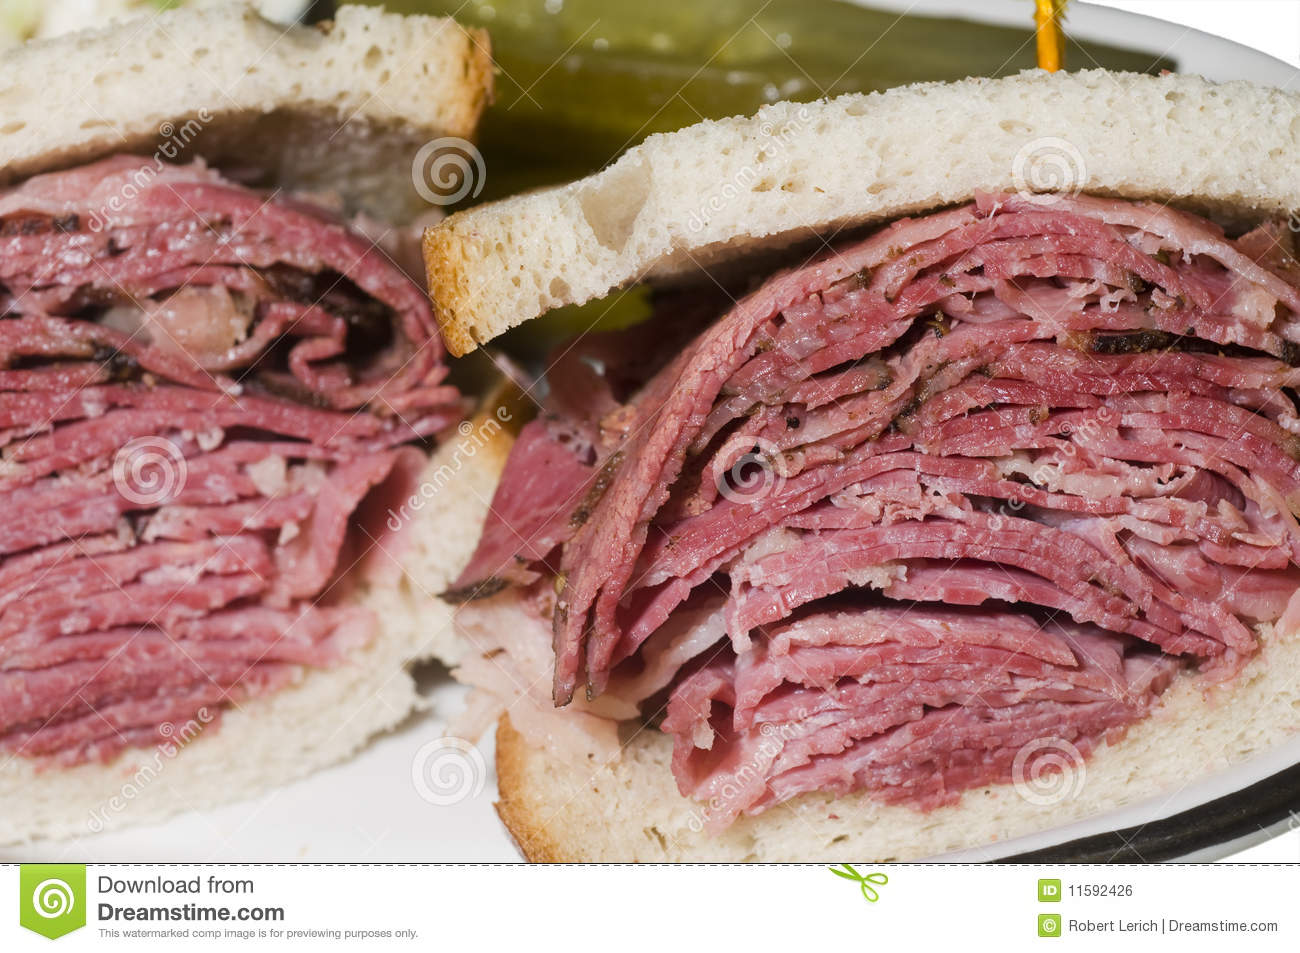 corned beef pastrami image search results